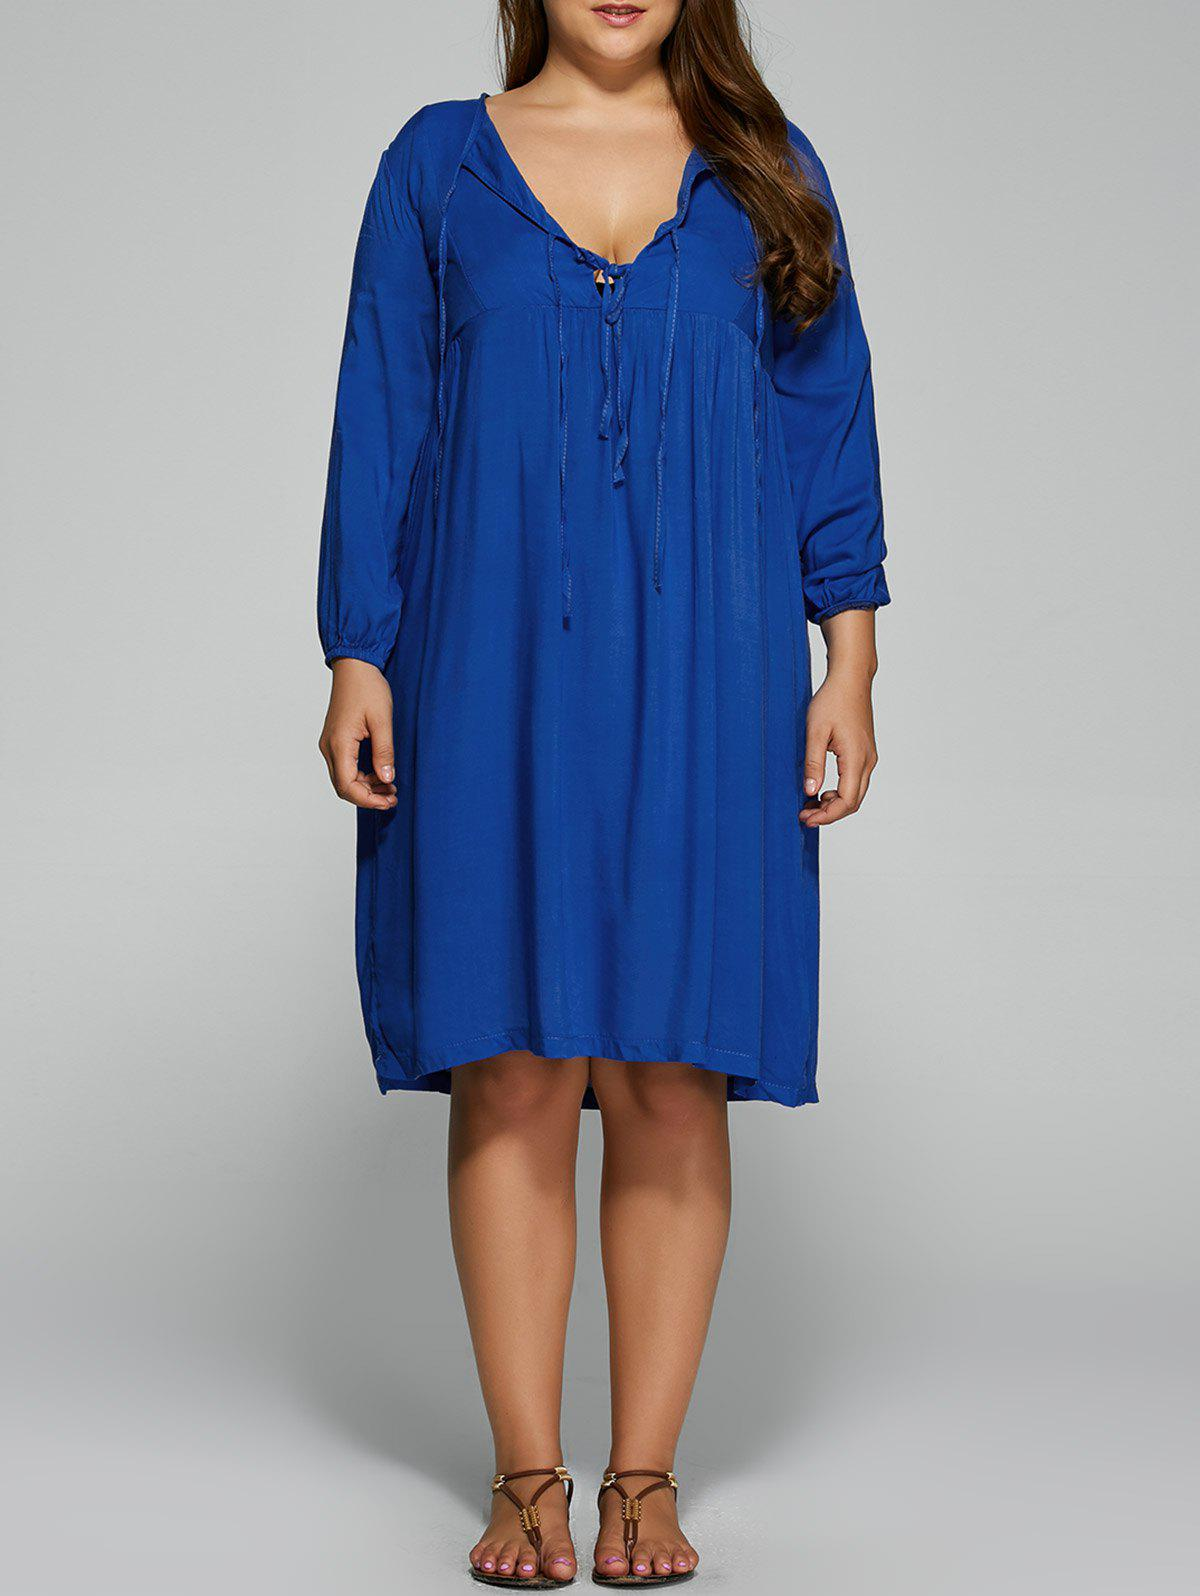 Chic Plus Size Empire Waist Loose-Fitting Dress